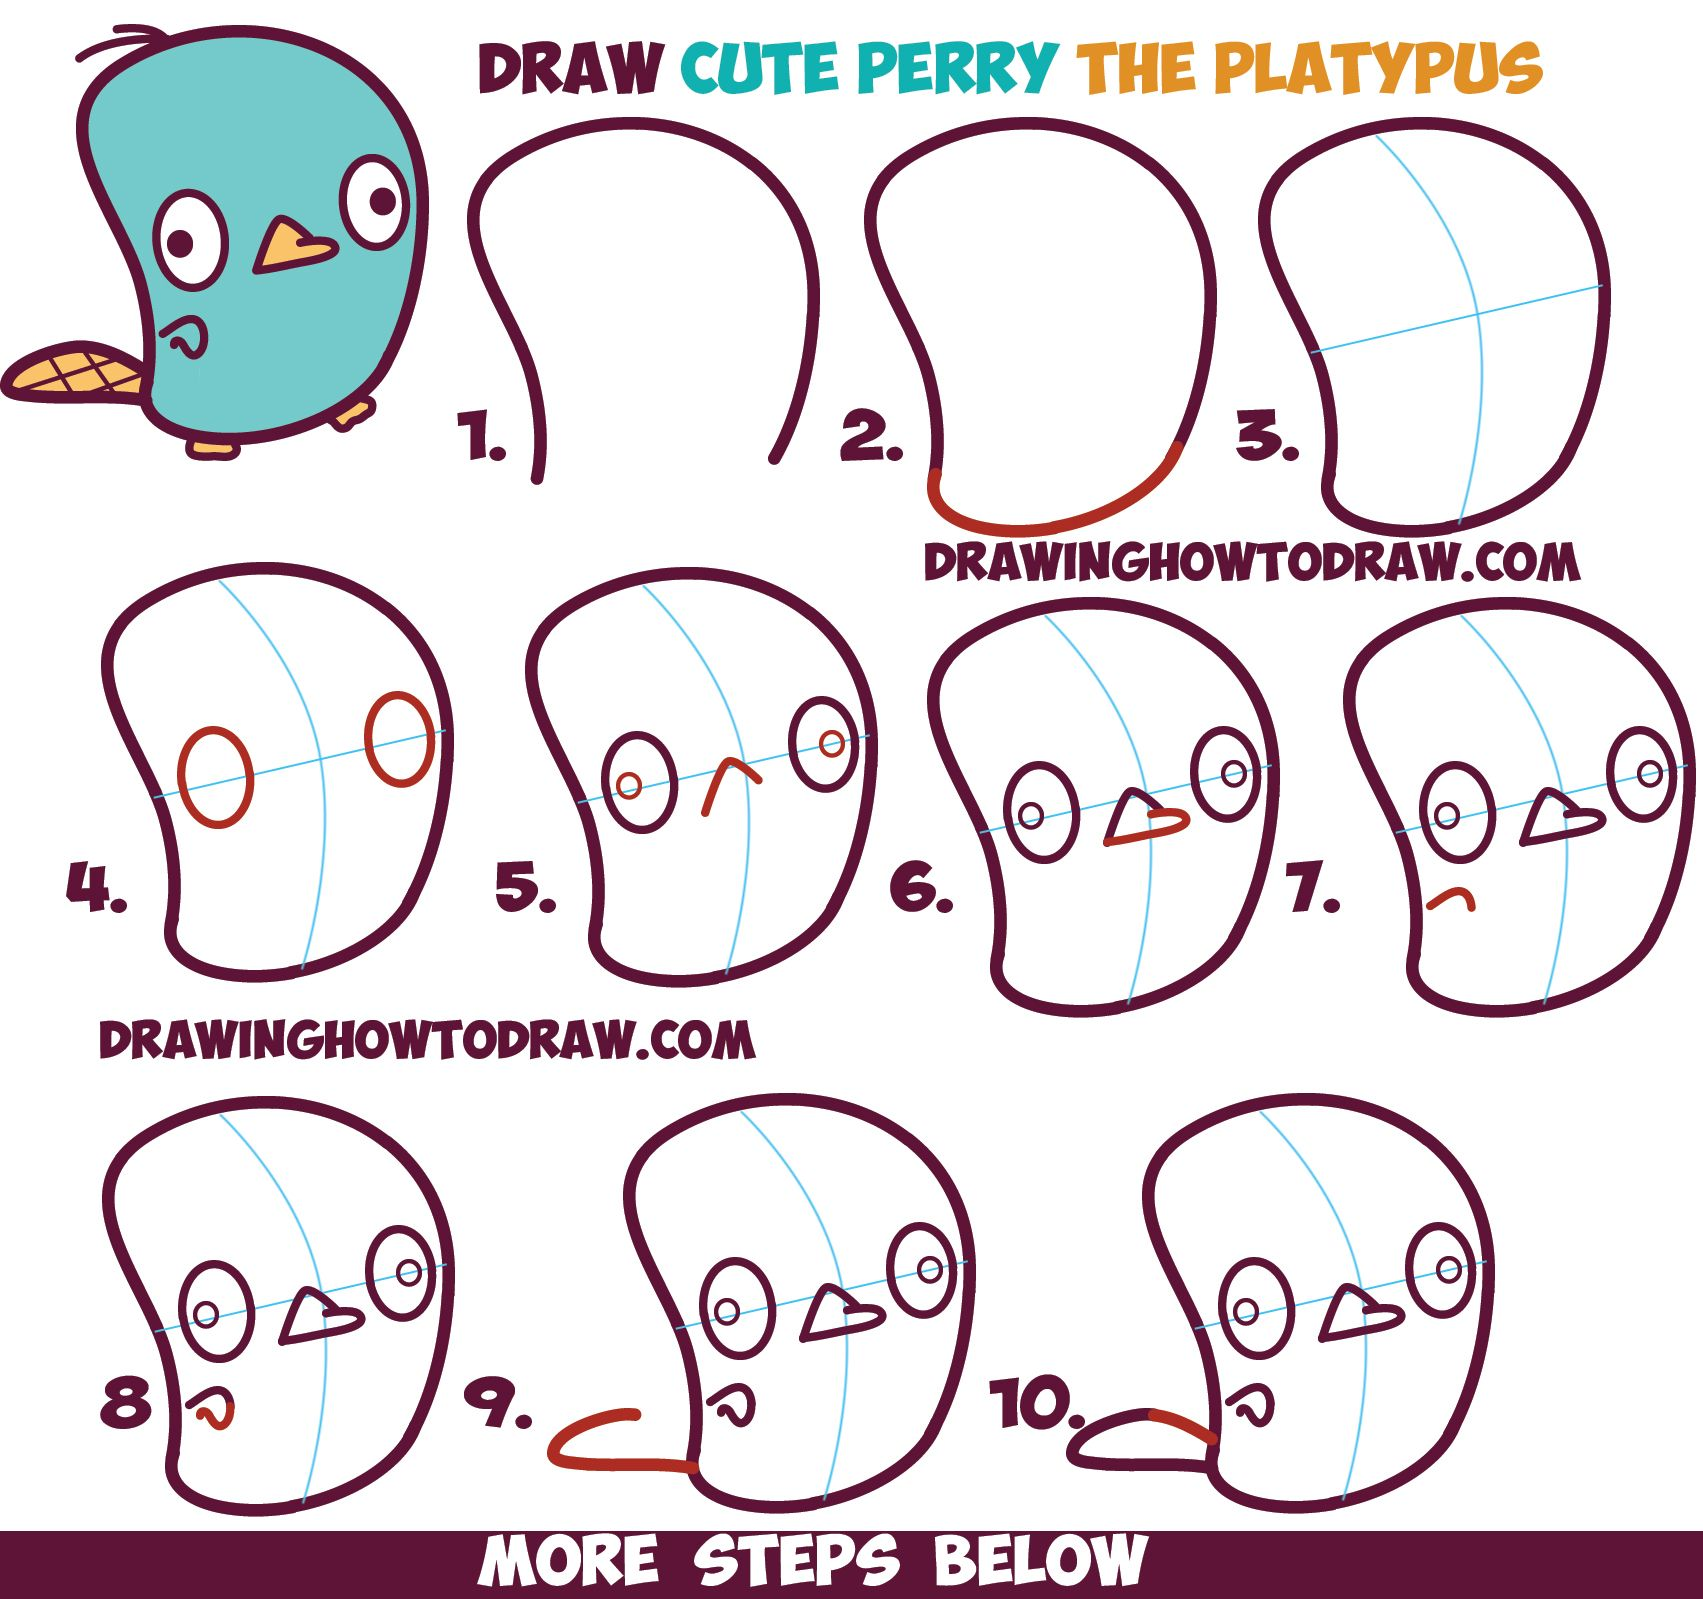 How To Draw Cute Kawaii / Chibi Perry The Platypus From